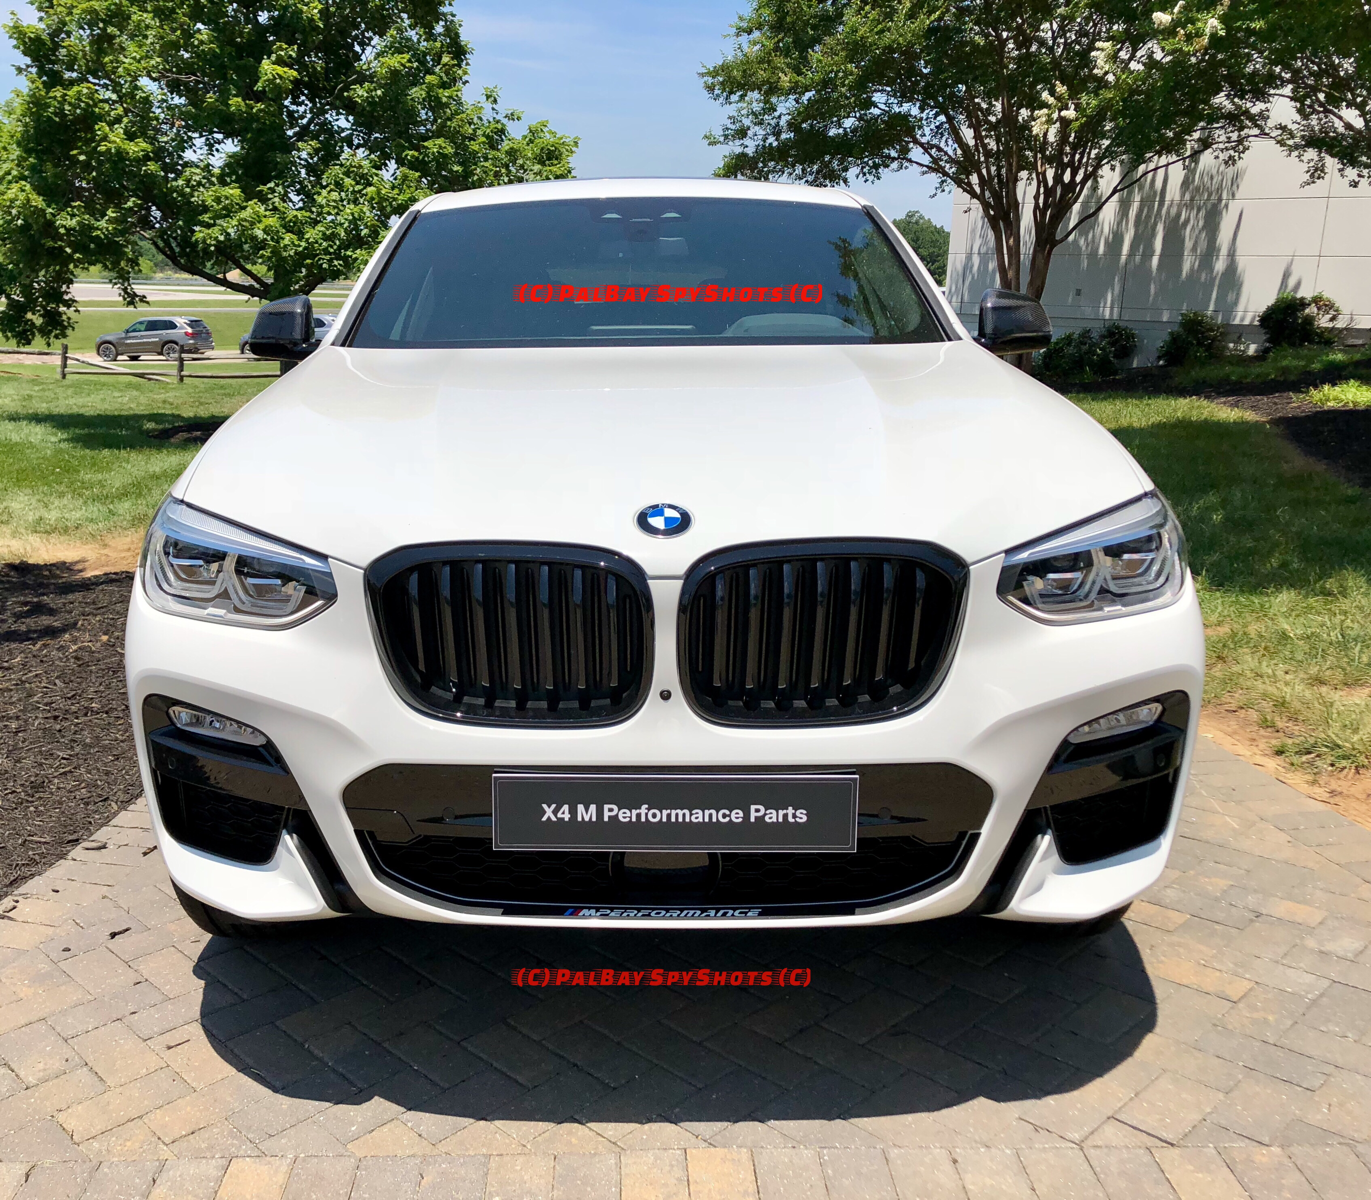 New Pictures Of The 2019 X4 M40i And M Performance Parts